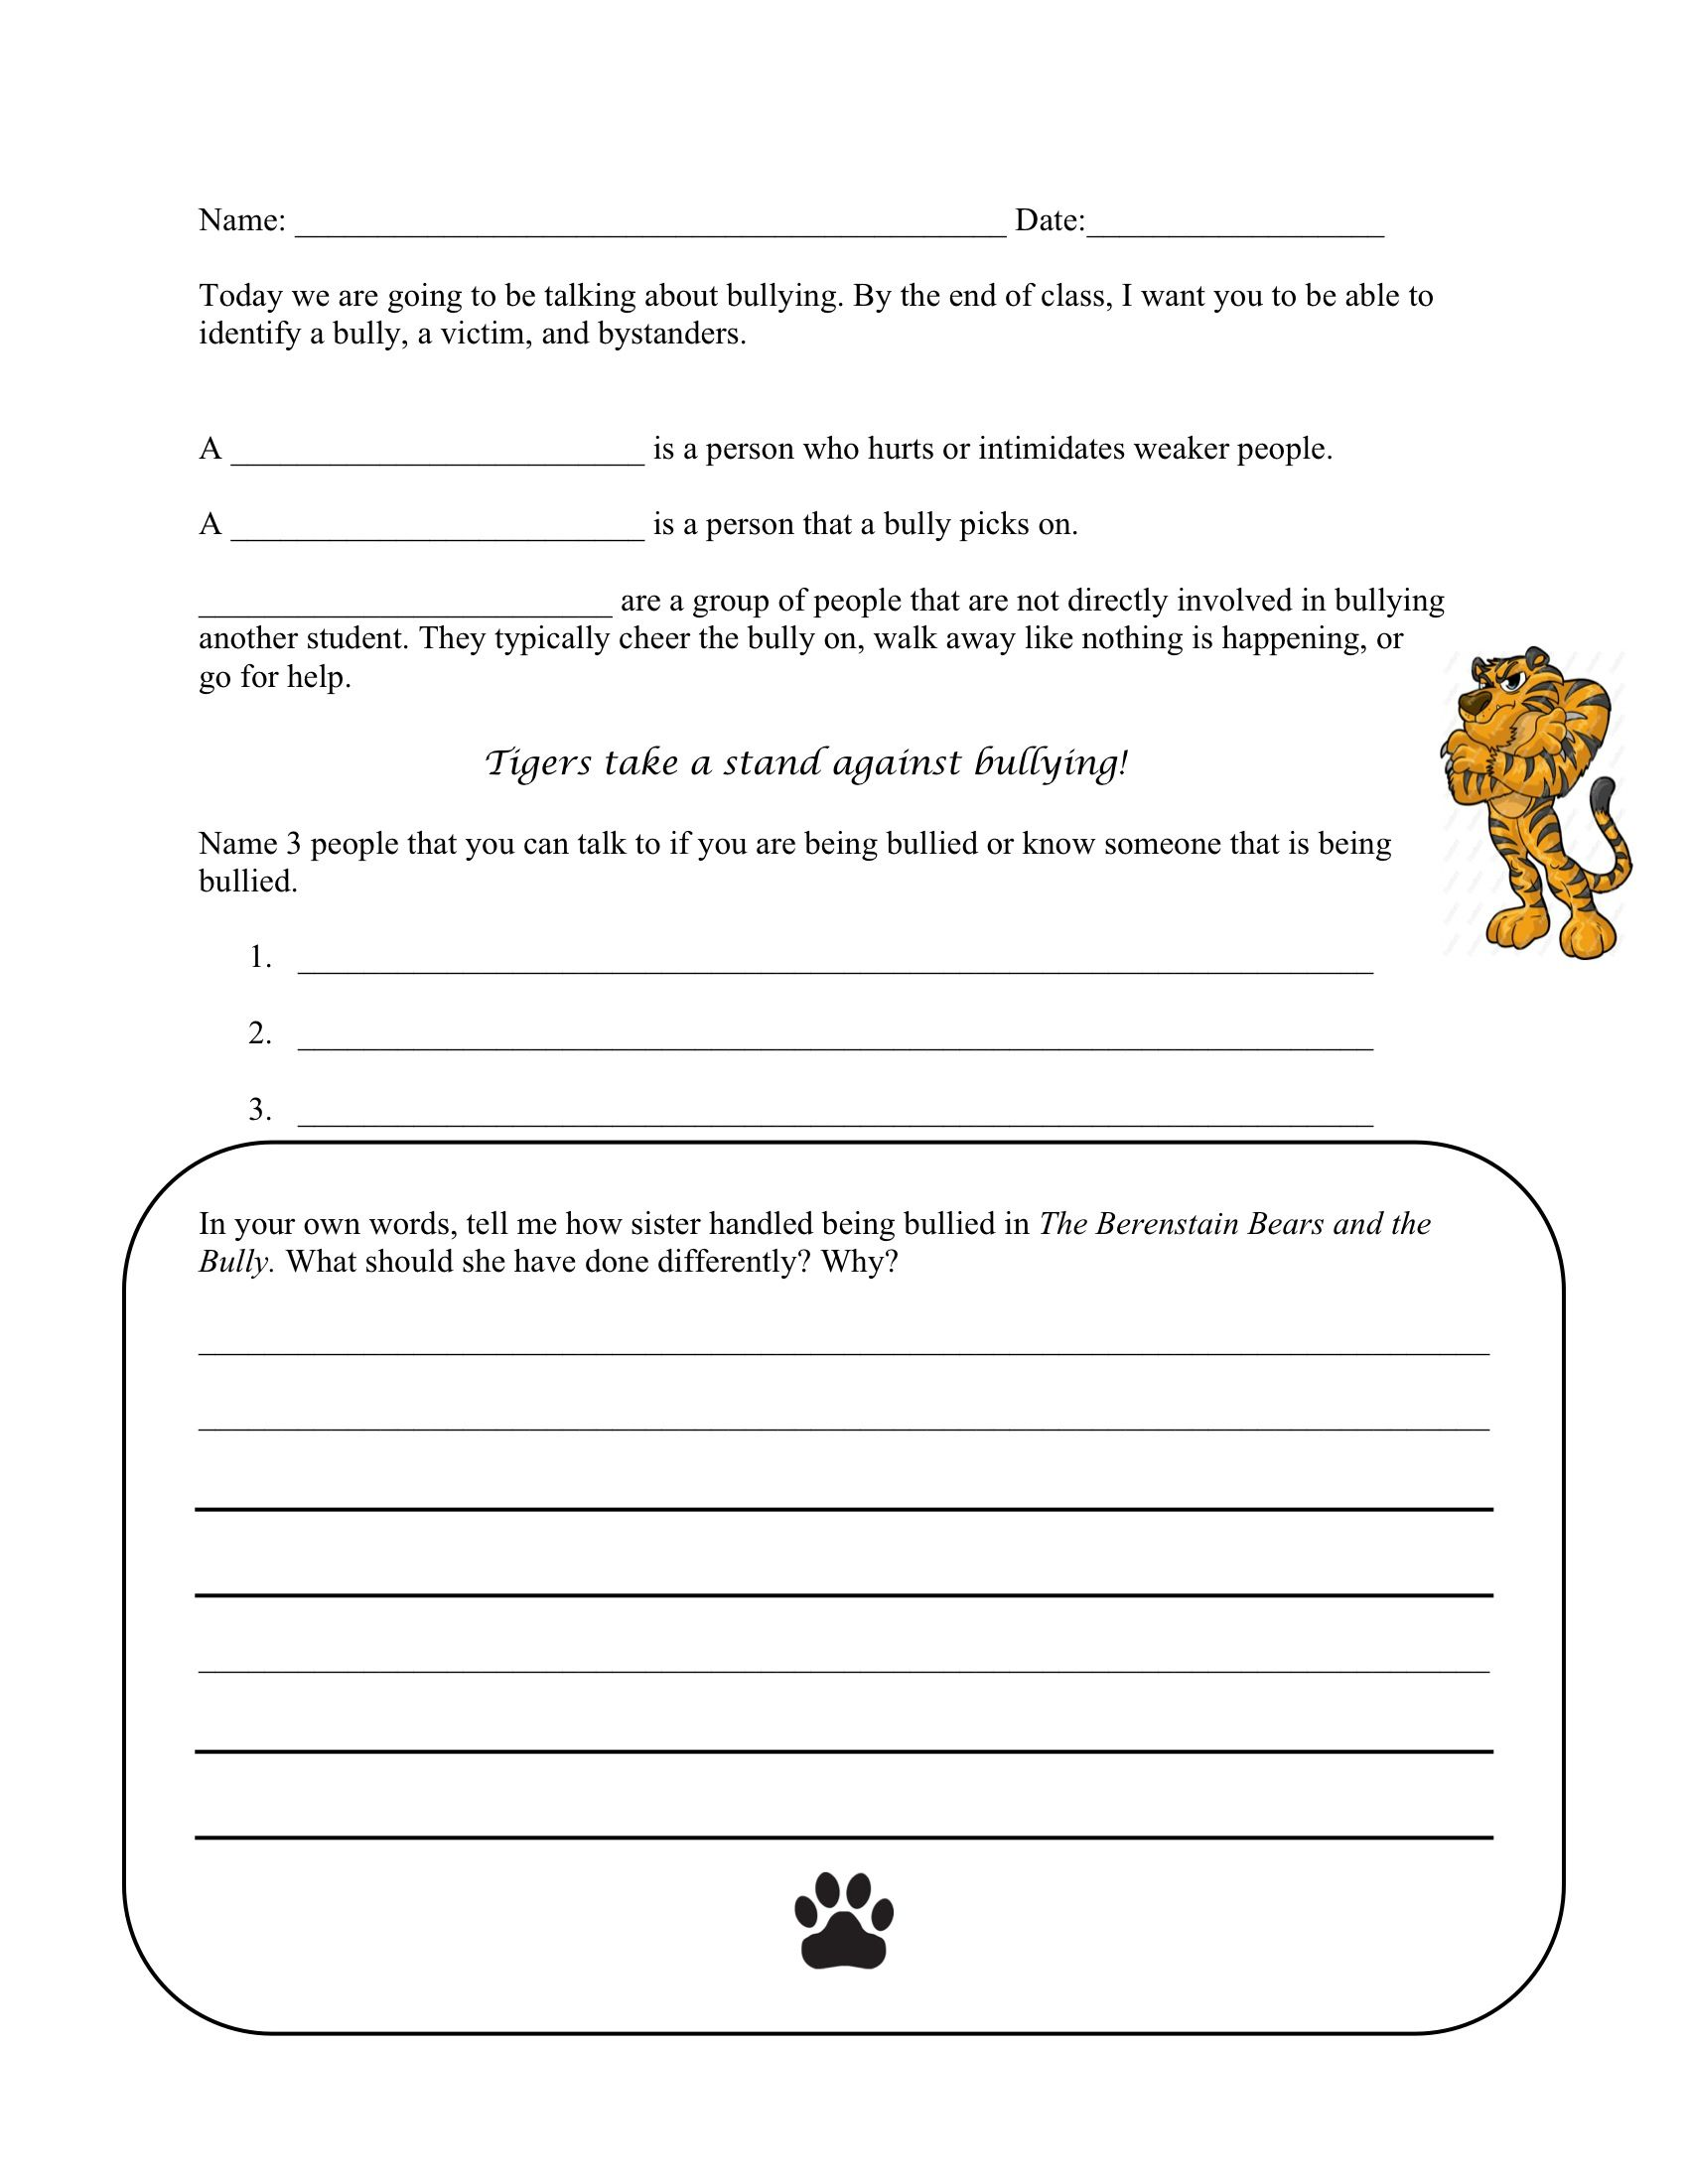 Bullying Worksheet To Go Along With The Berenstain Bears